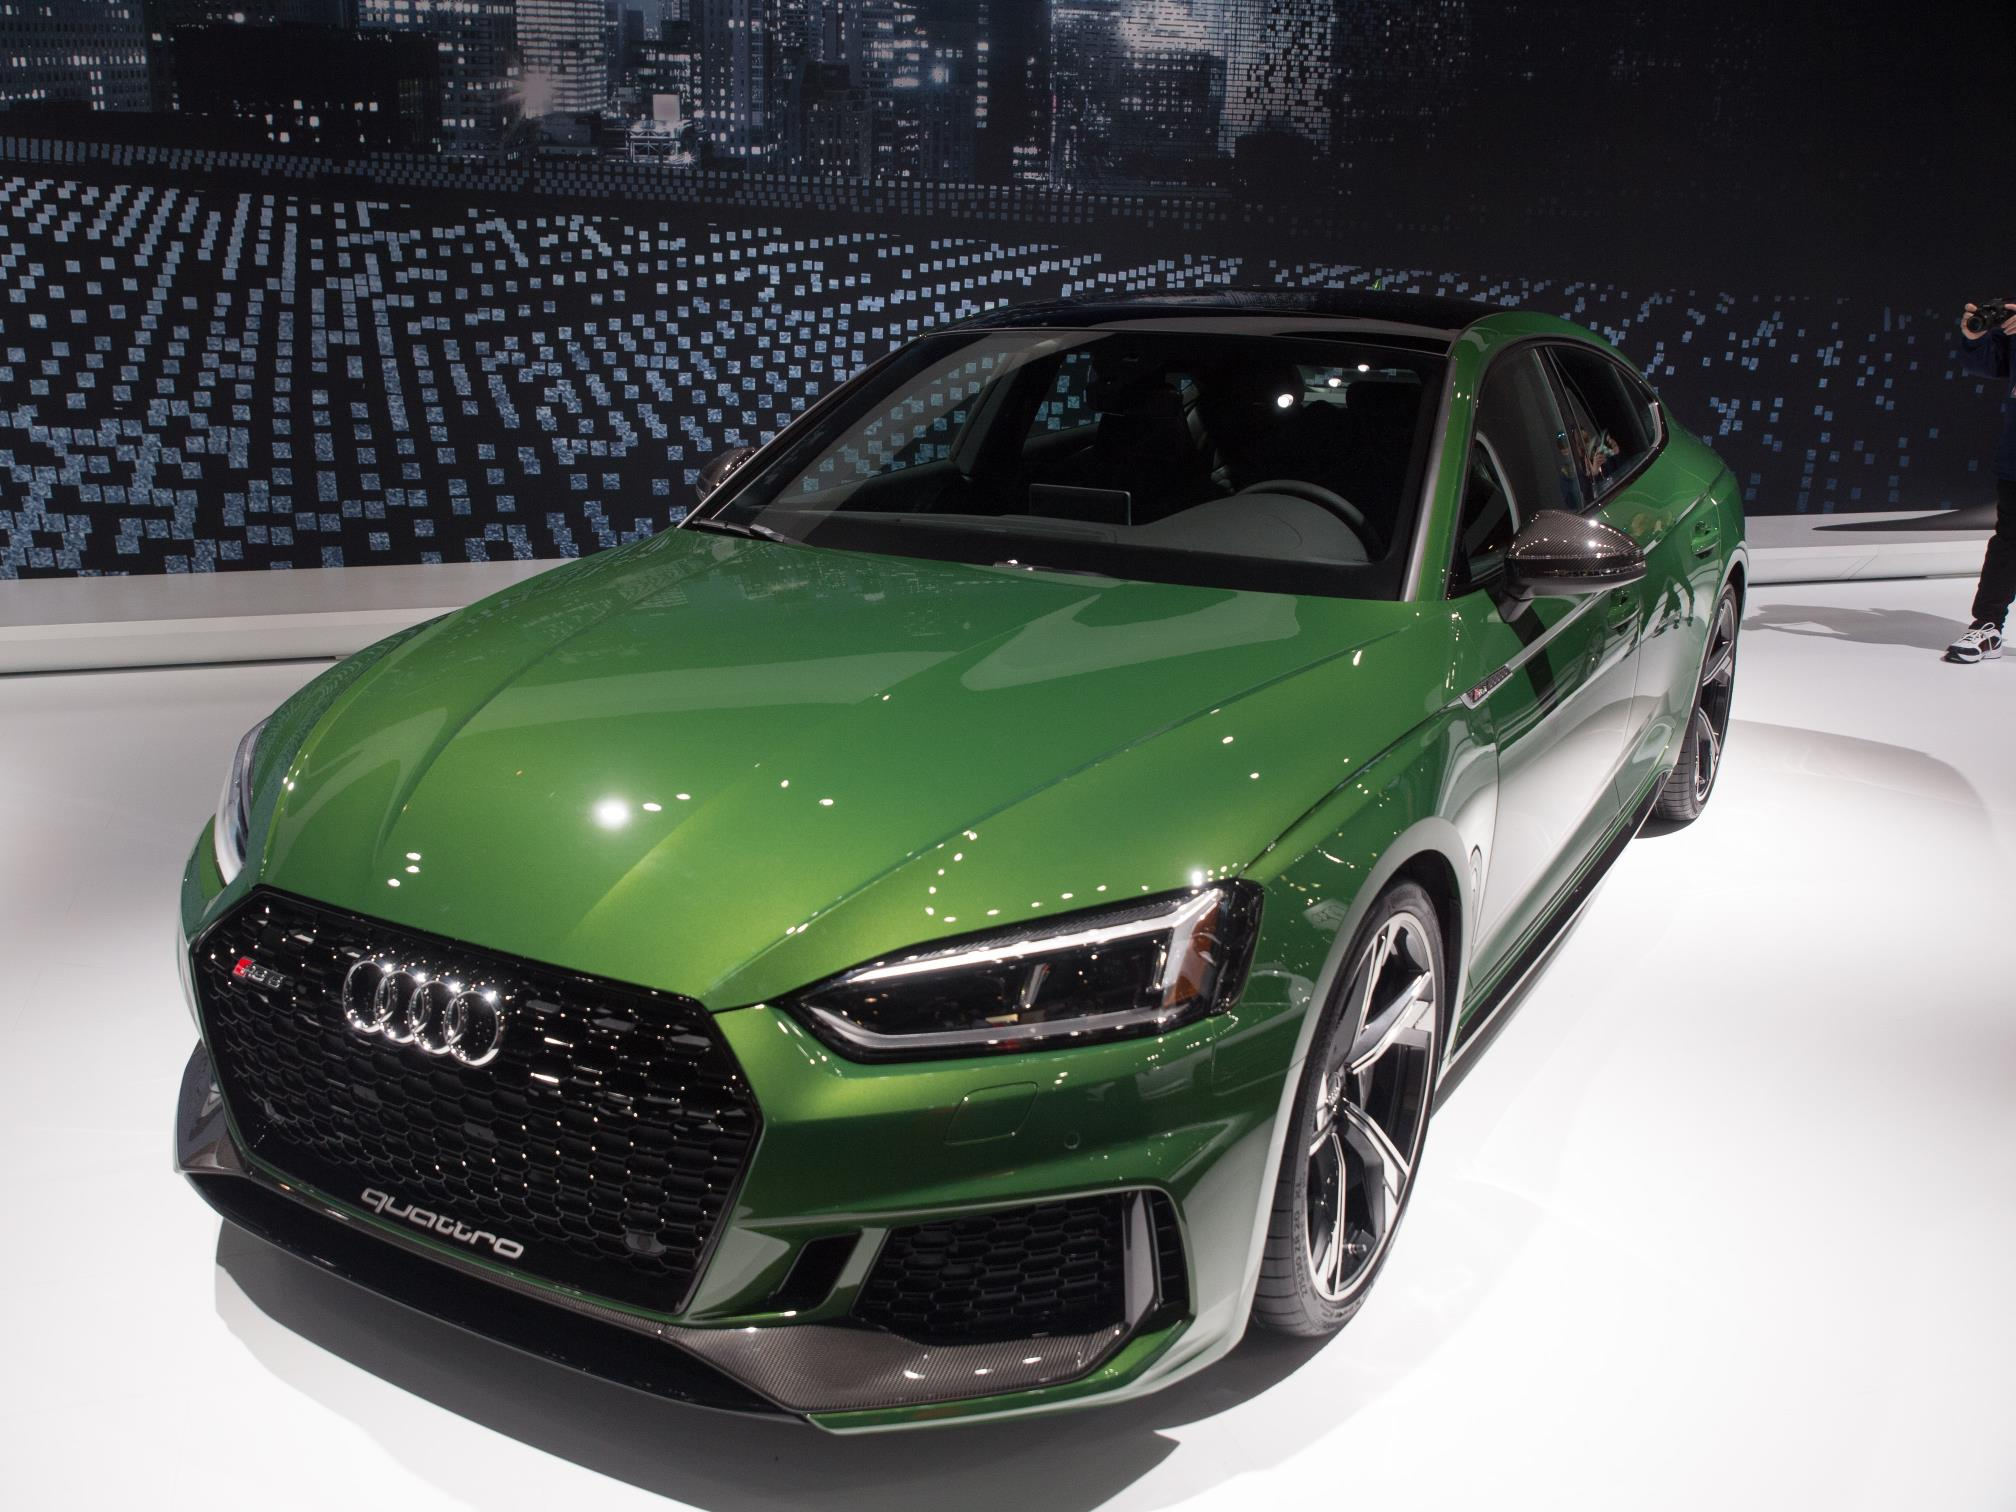 2019 Audi RS5 Sportback in Sonoma Green Is Anticlimactic ...